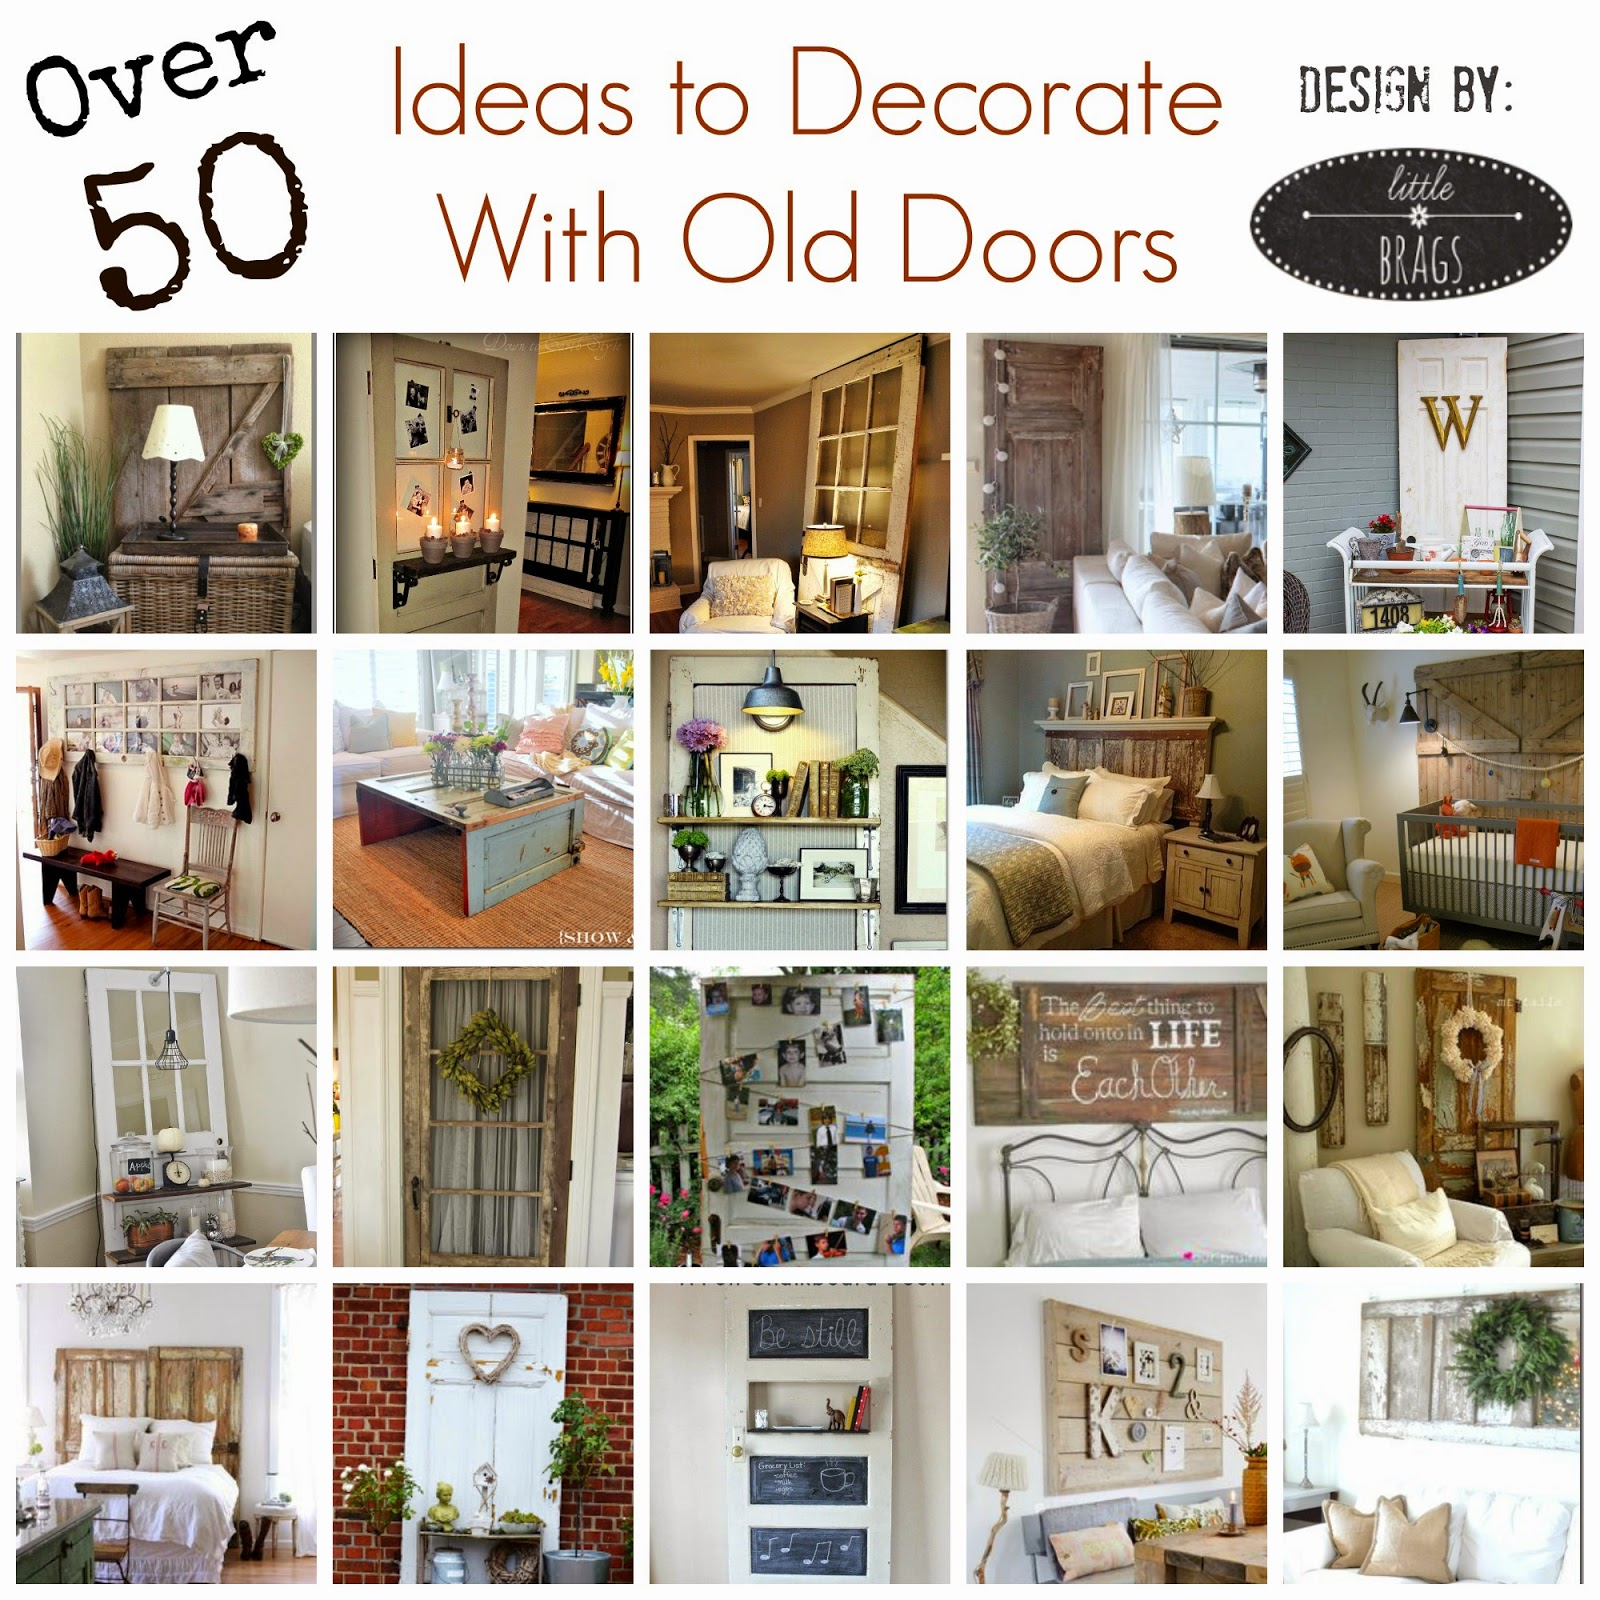 Ideas For Old Windows Little Brags Decorating With Old Windows